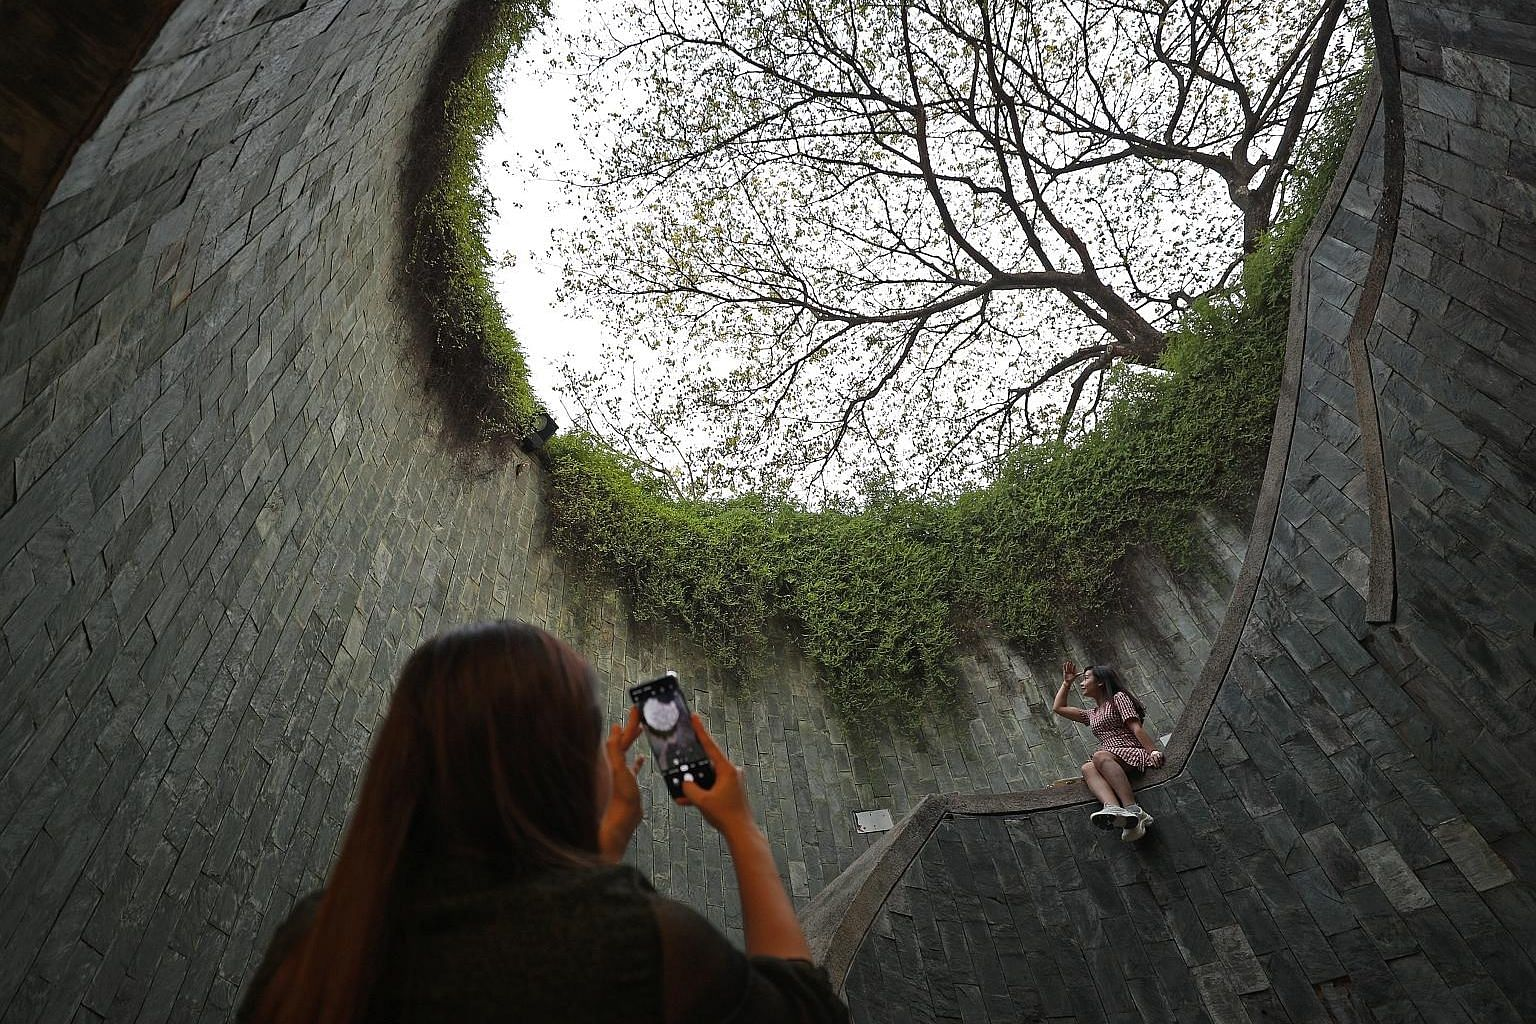 A staircase at Fort Canning that is a popular photography spot for tourists. The nine-month SingapoRediscovers campaign will have packages and deals for locals, heartland tours and the promotion of precincts as mini-holiday destinations. ST PHOTO: JA